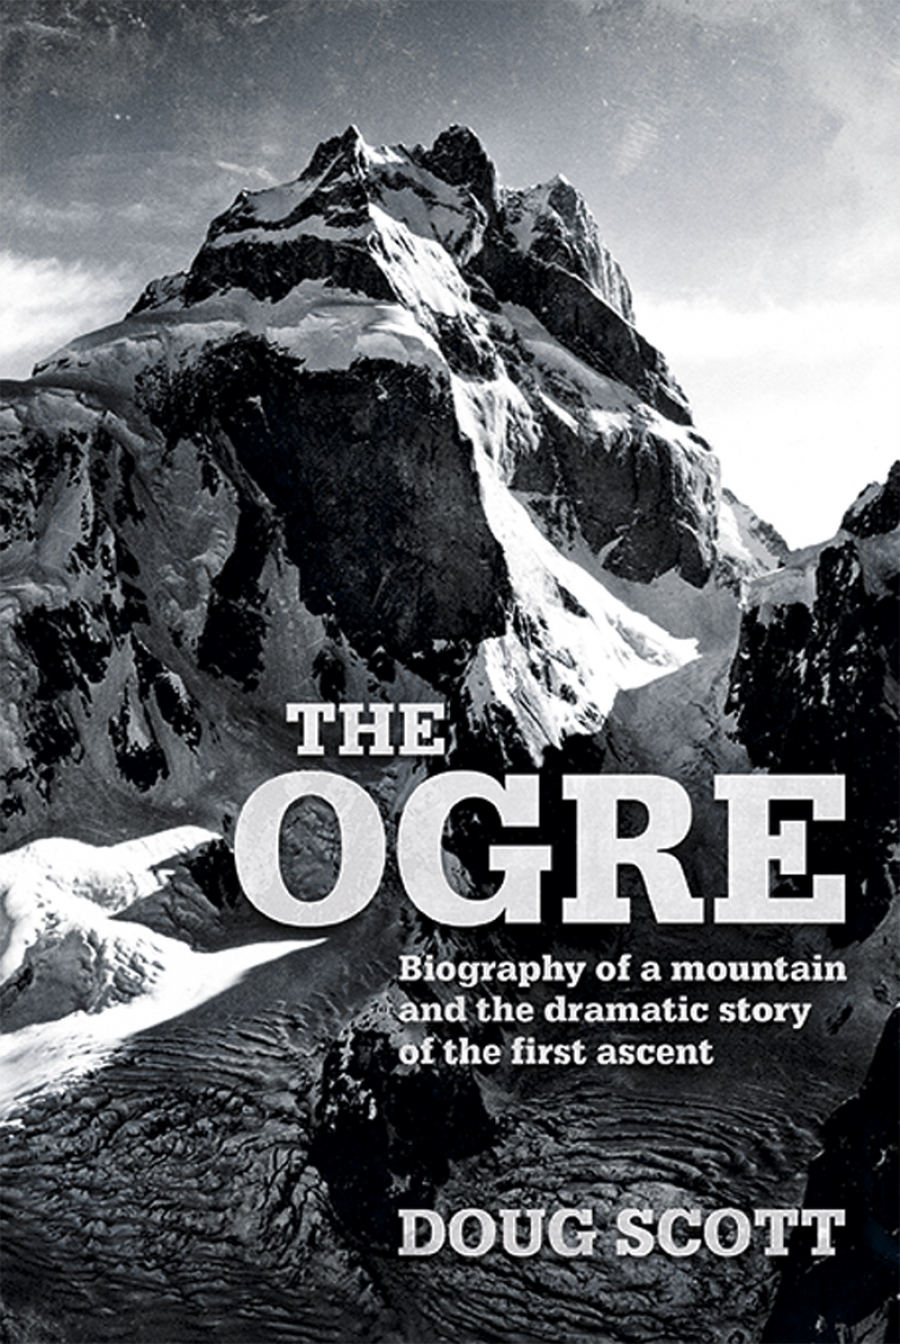 Doug Scott reveals the truth behind his dramatic first ascent of the Ogre in 1977